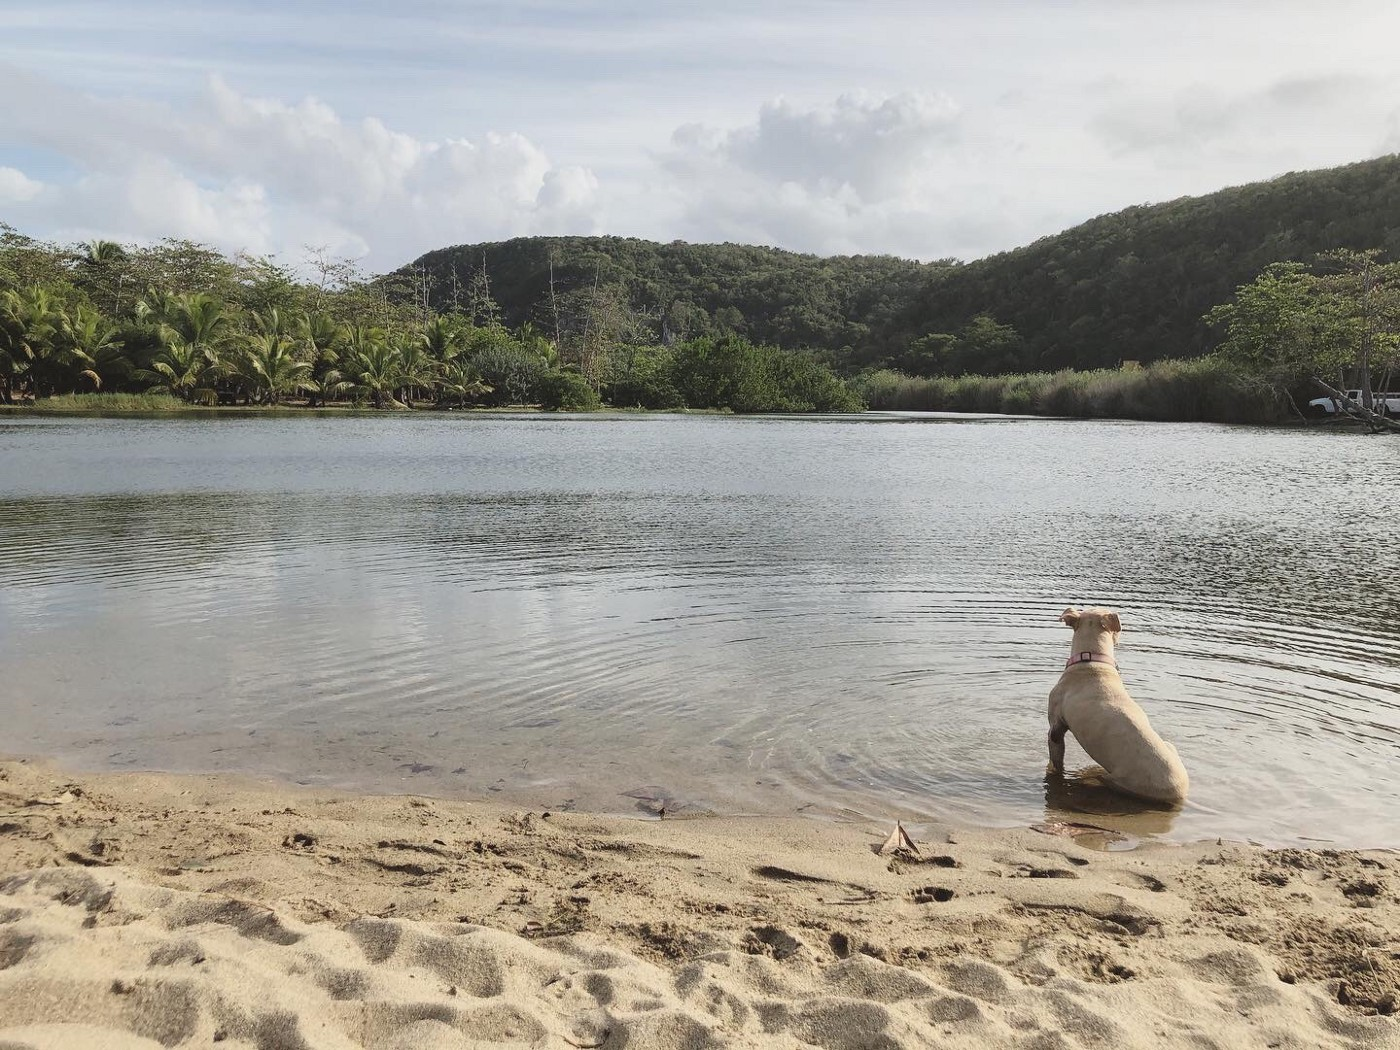 Georgia May, my ash blonde pitbull sitting at the edge of the river, the green mountains of Puerto Rico looming in the background.